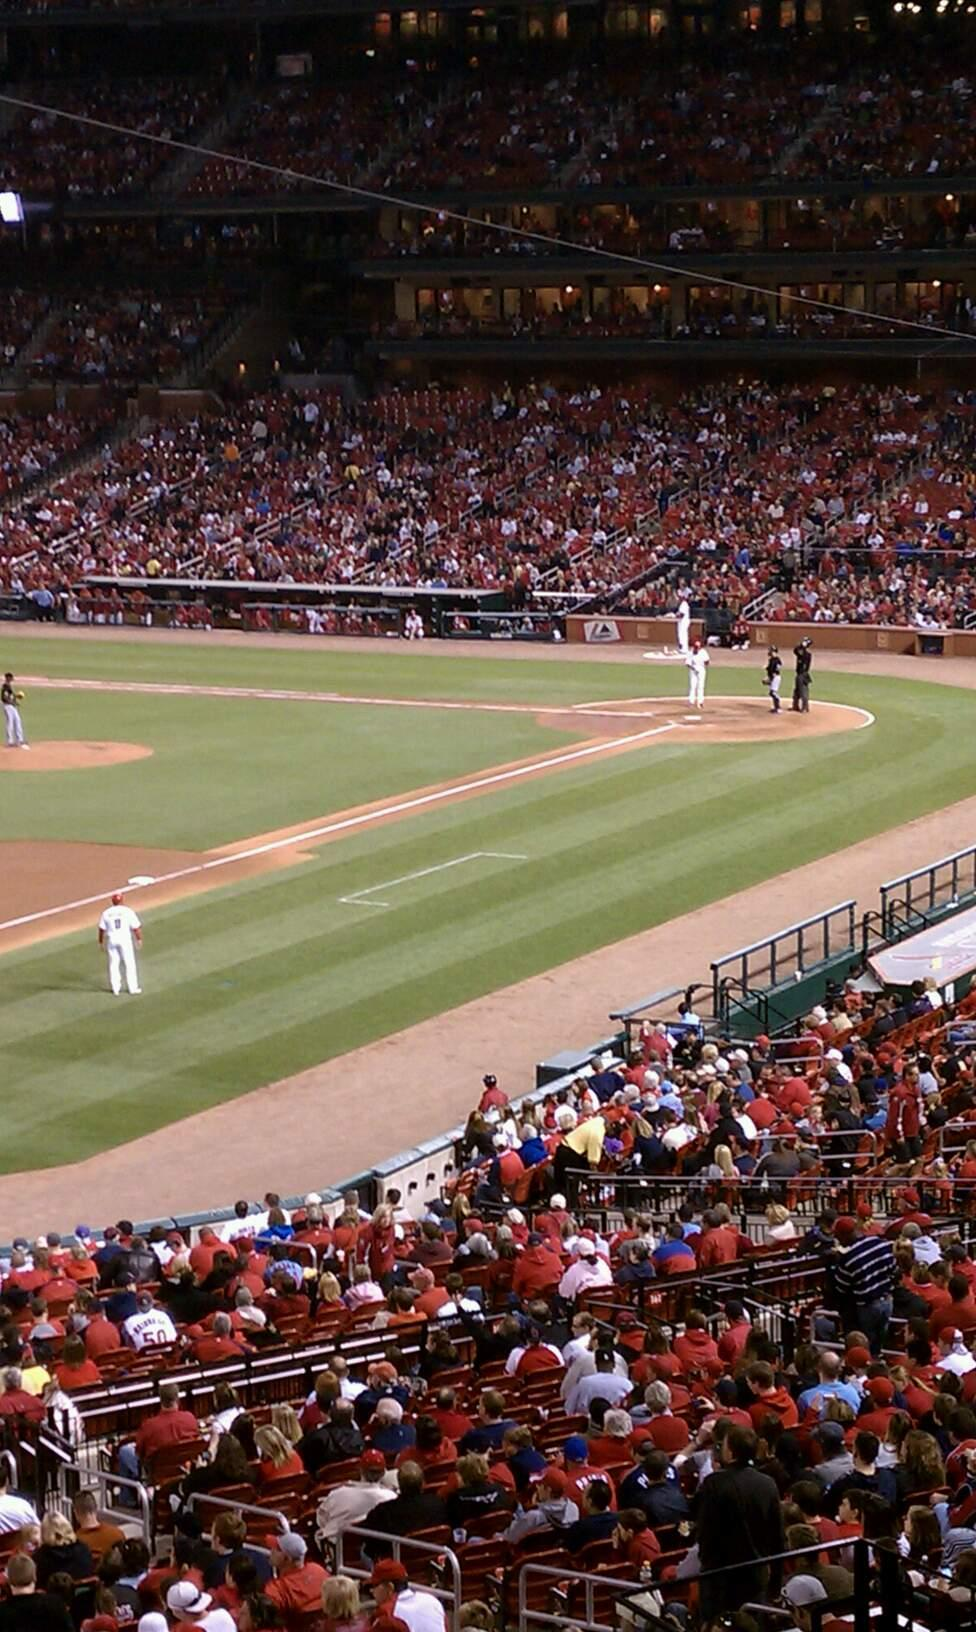 Busch Stadium Section Champions Club 11 Row A Seat 3